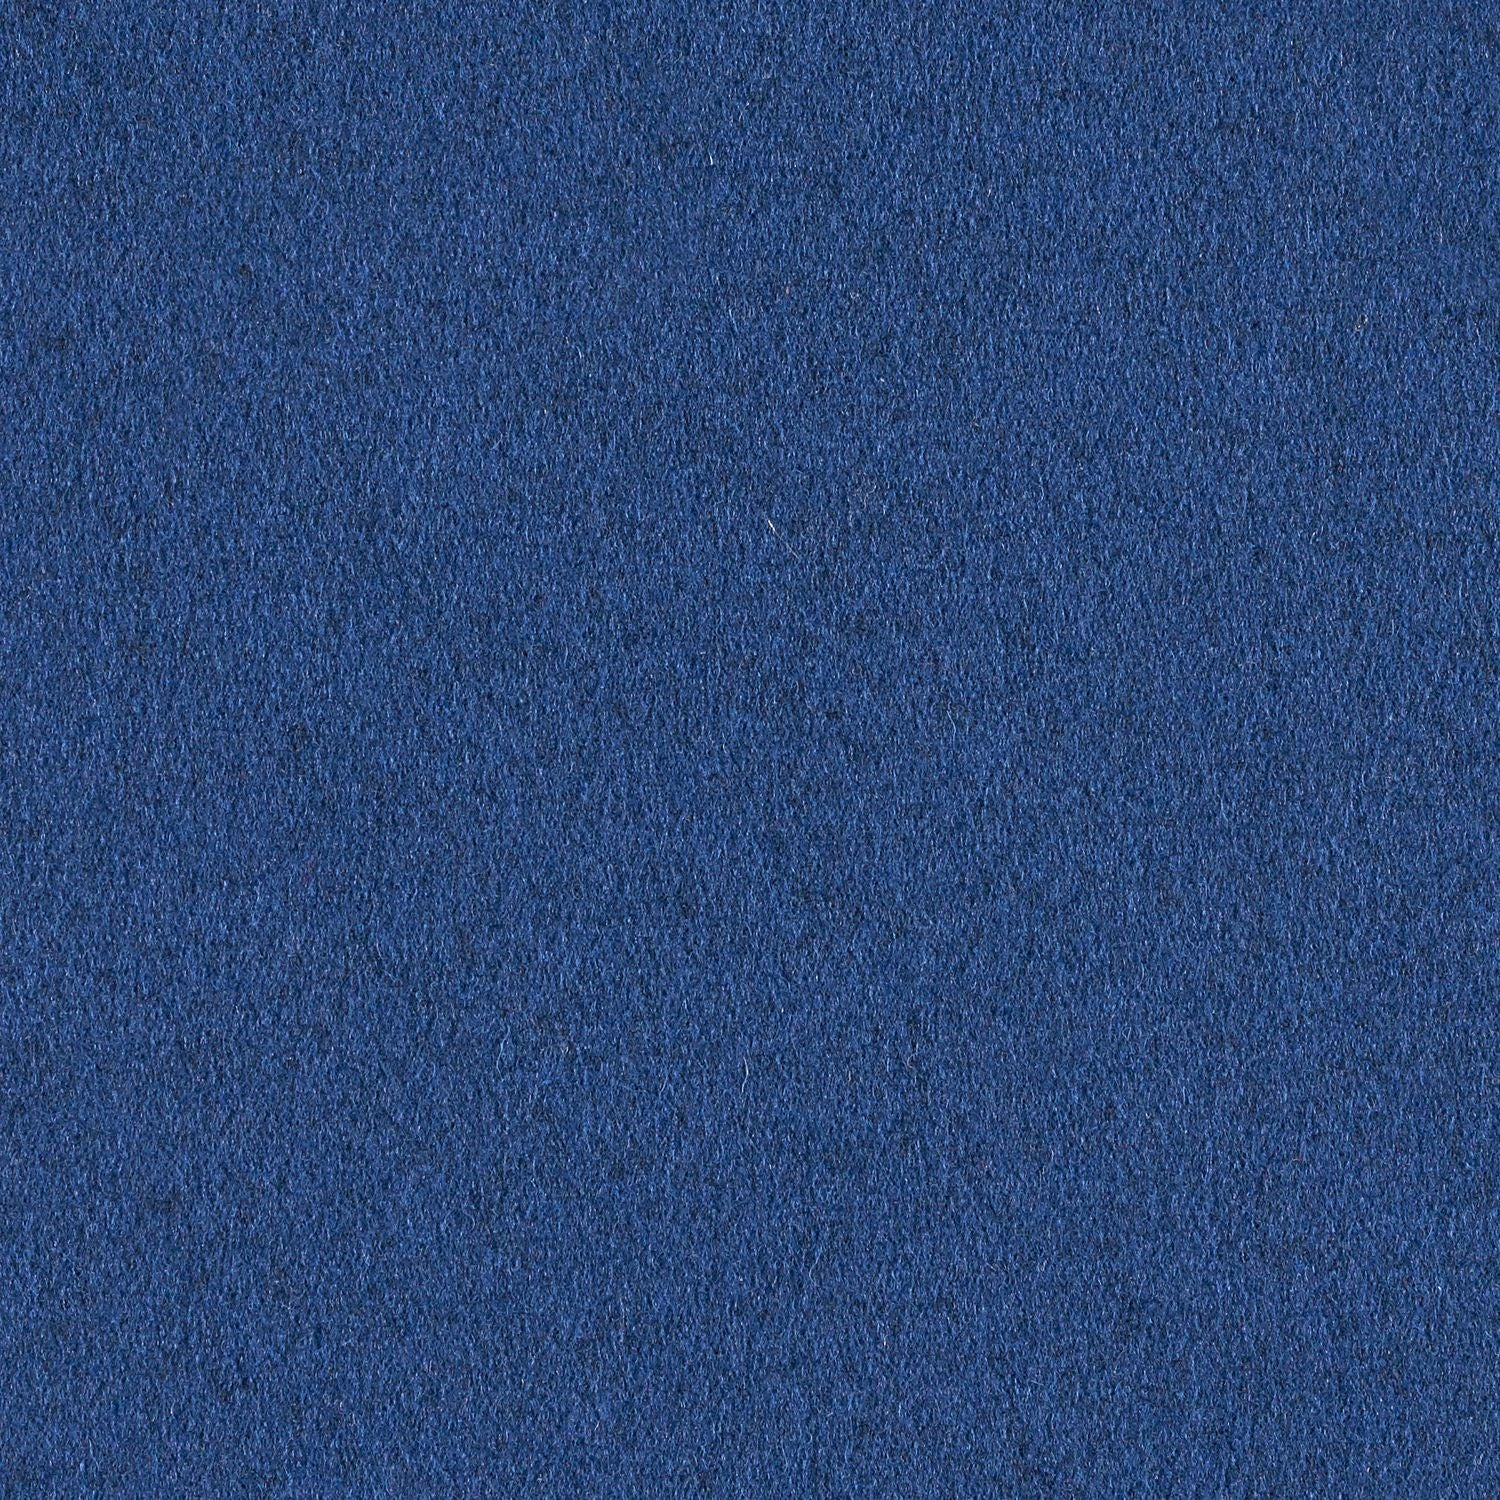 Heather Felt - Marina - 4007 - 13